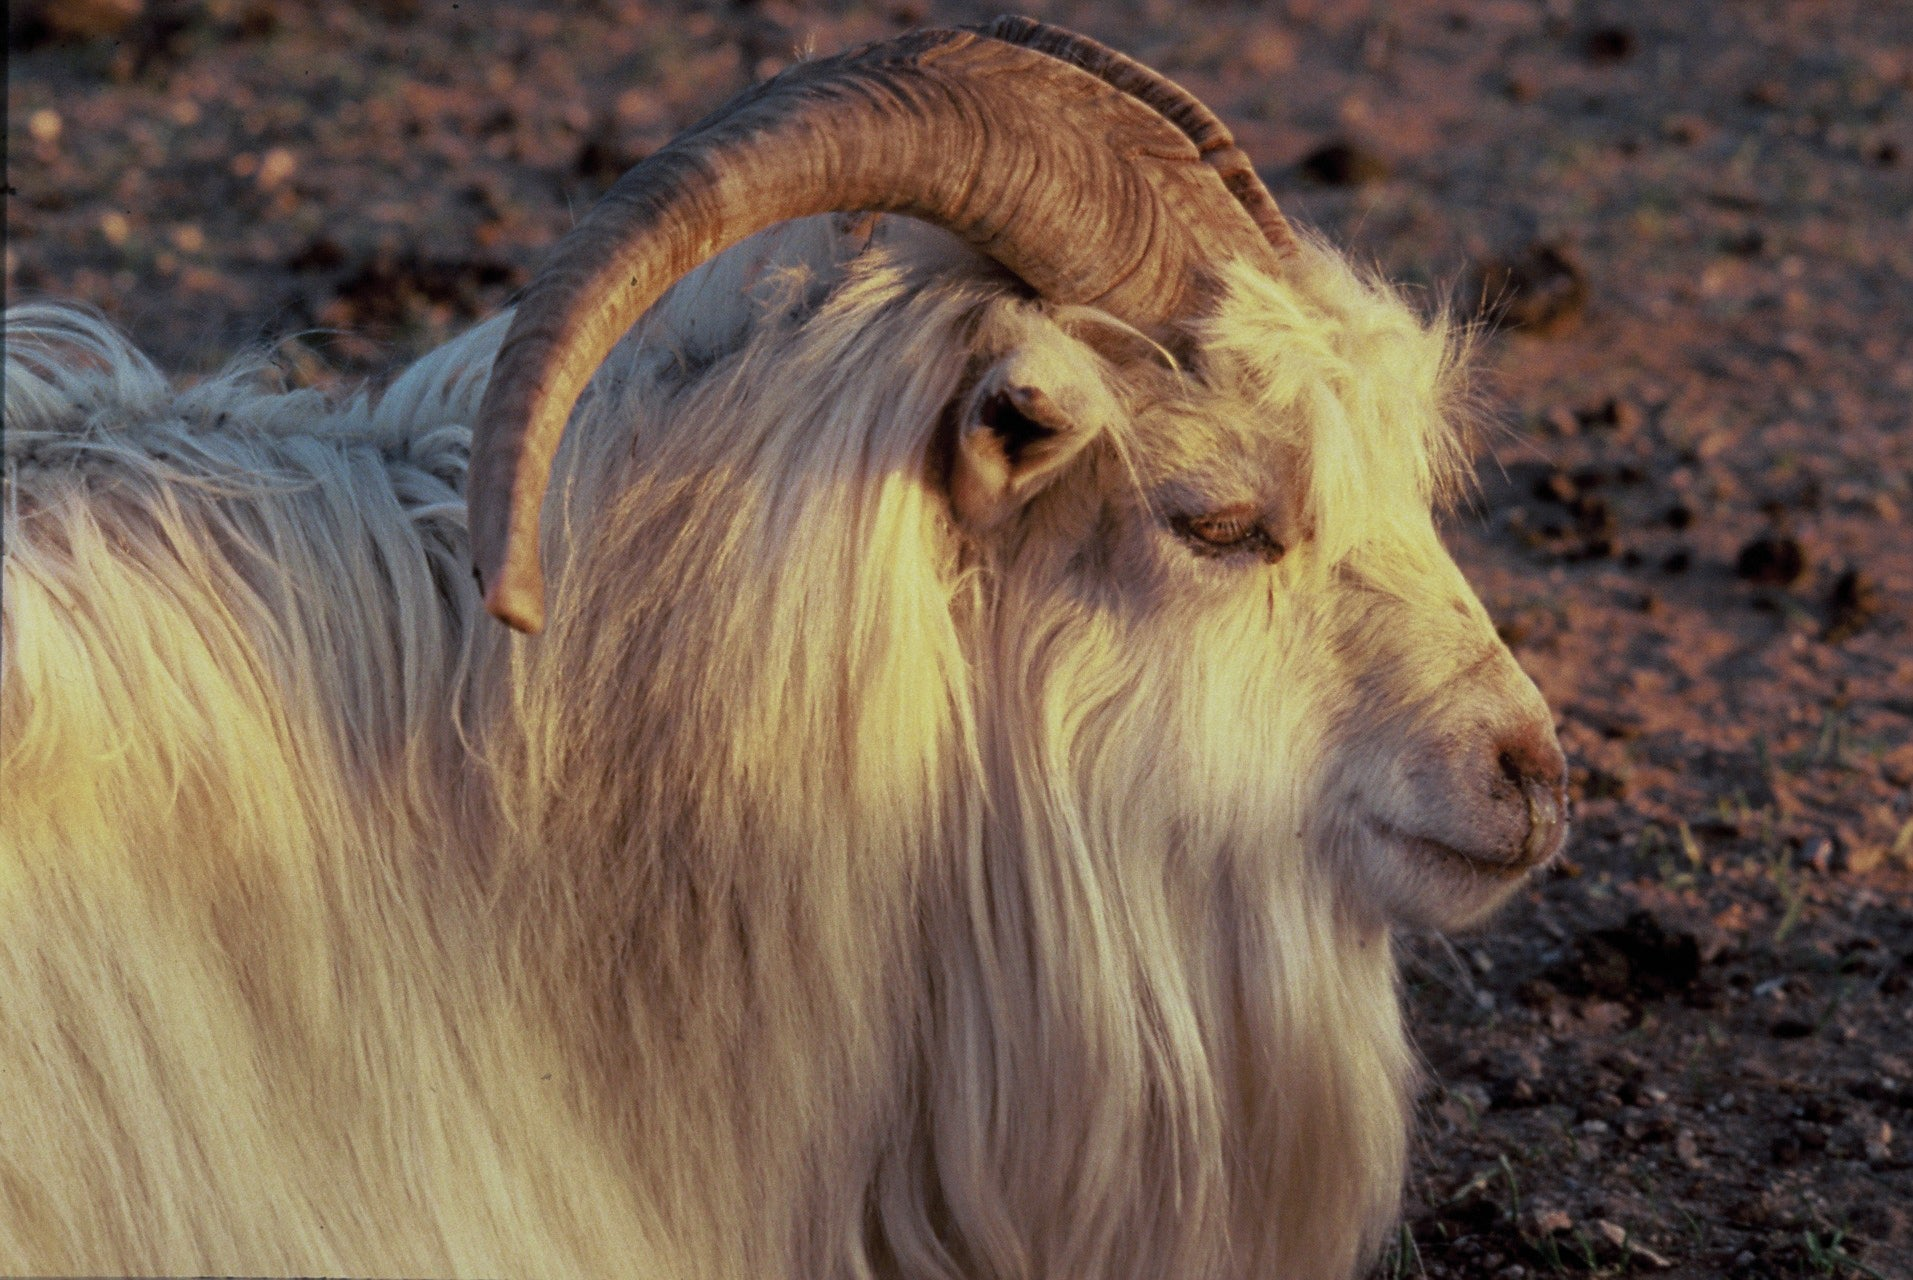 The Highland Goat. A source of Scottish Knitwear